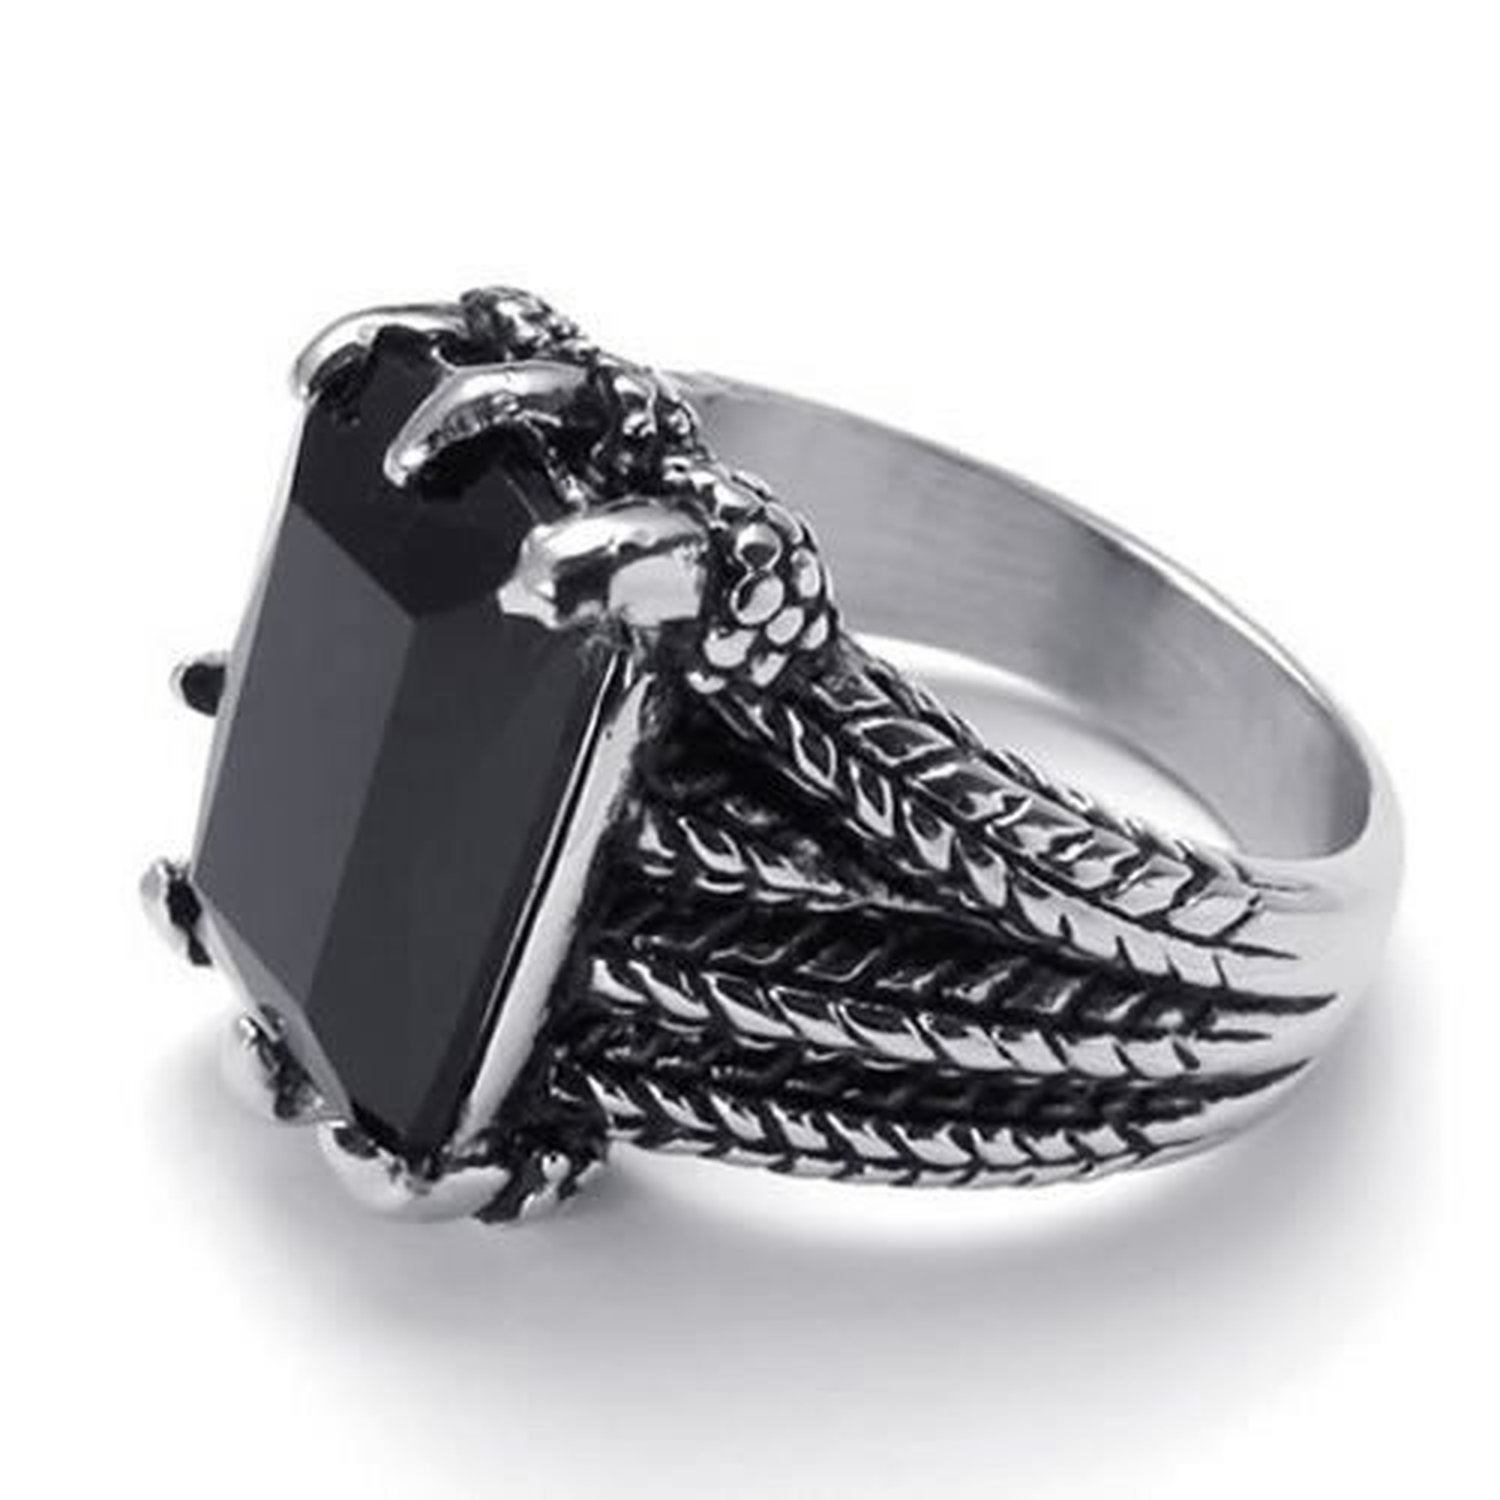 CLLSTORE Jewelry Biker Gothic Dragon Claw Stainless Steel Mens Ring Black Silver